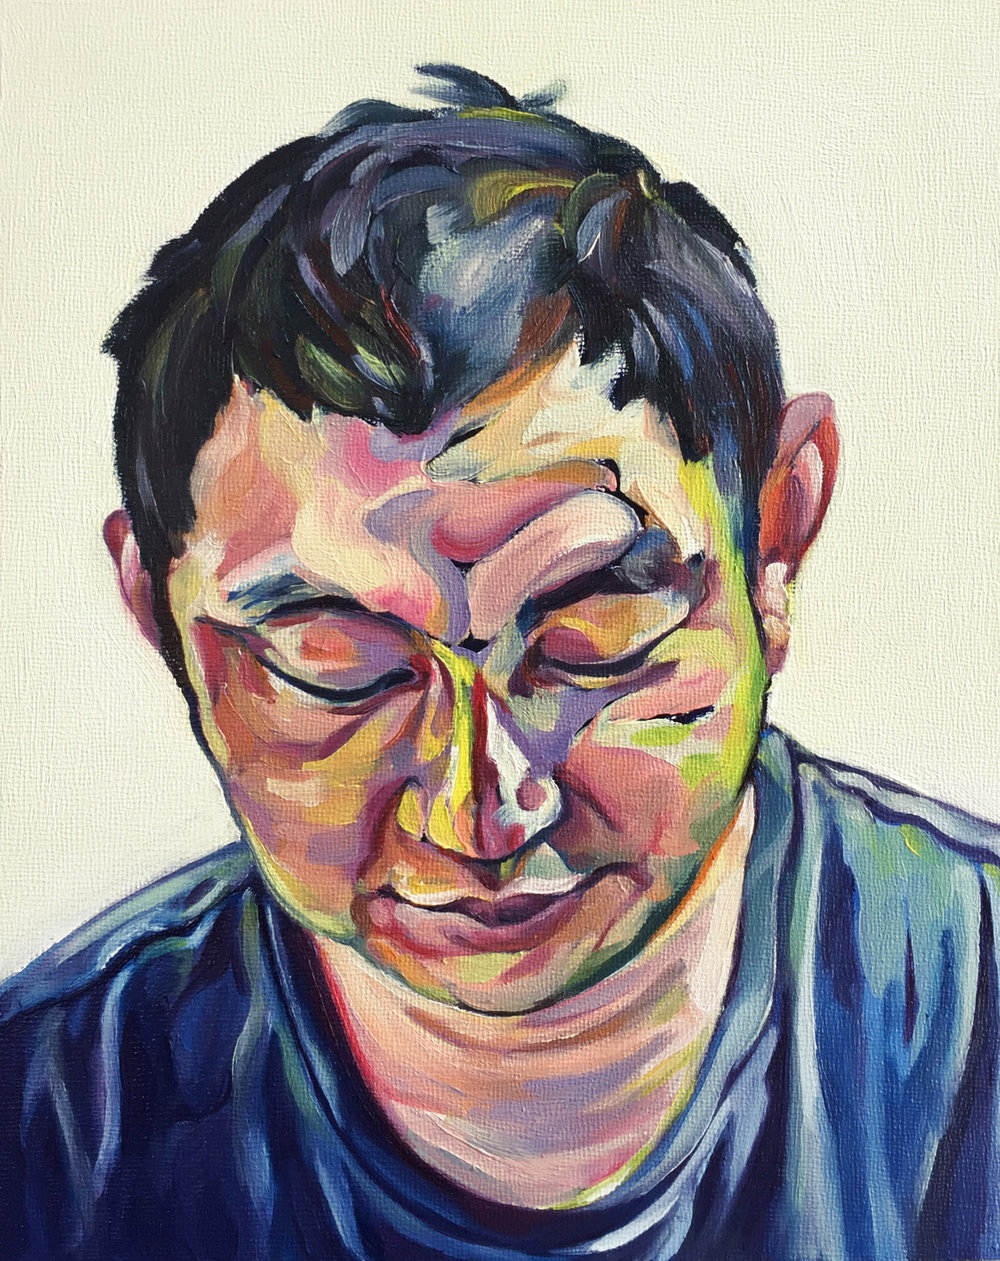 Qing_Song_Violet_OilonWoodPanel_10x8.JPEG